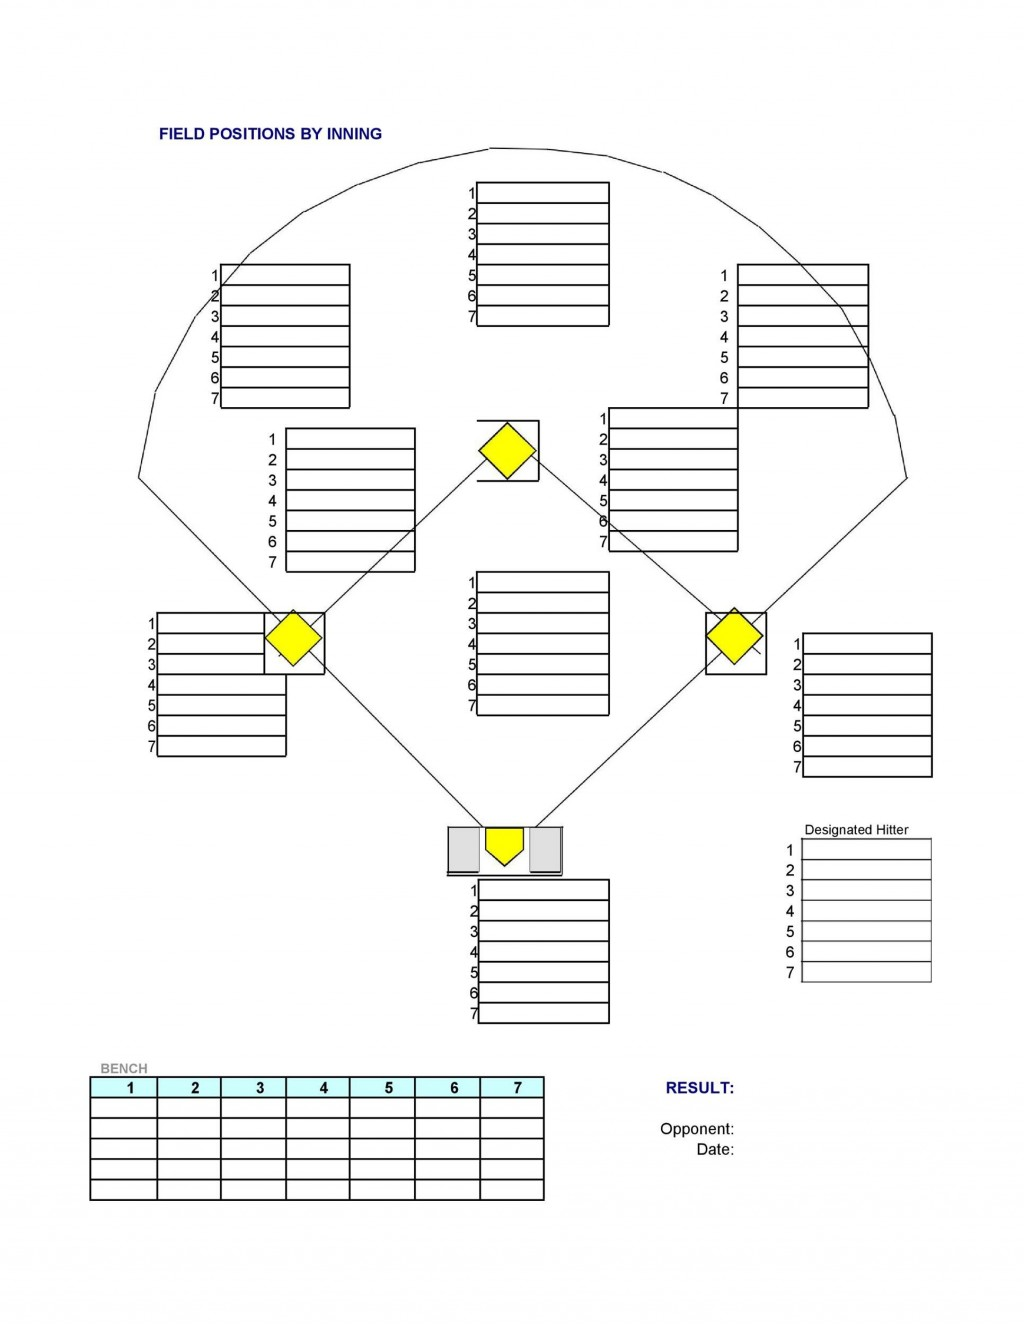 004 Astounding Softball Lineup Template Excel Highest Clarity  Batting Card RosterLarge